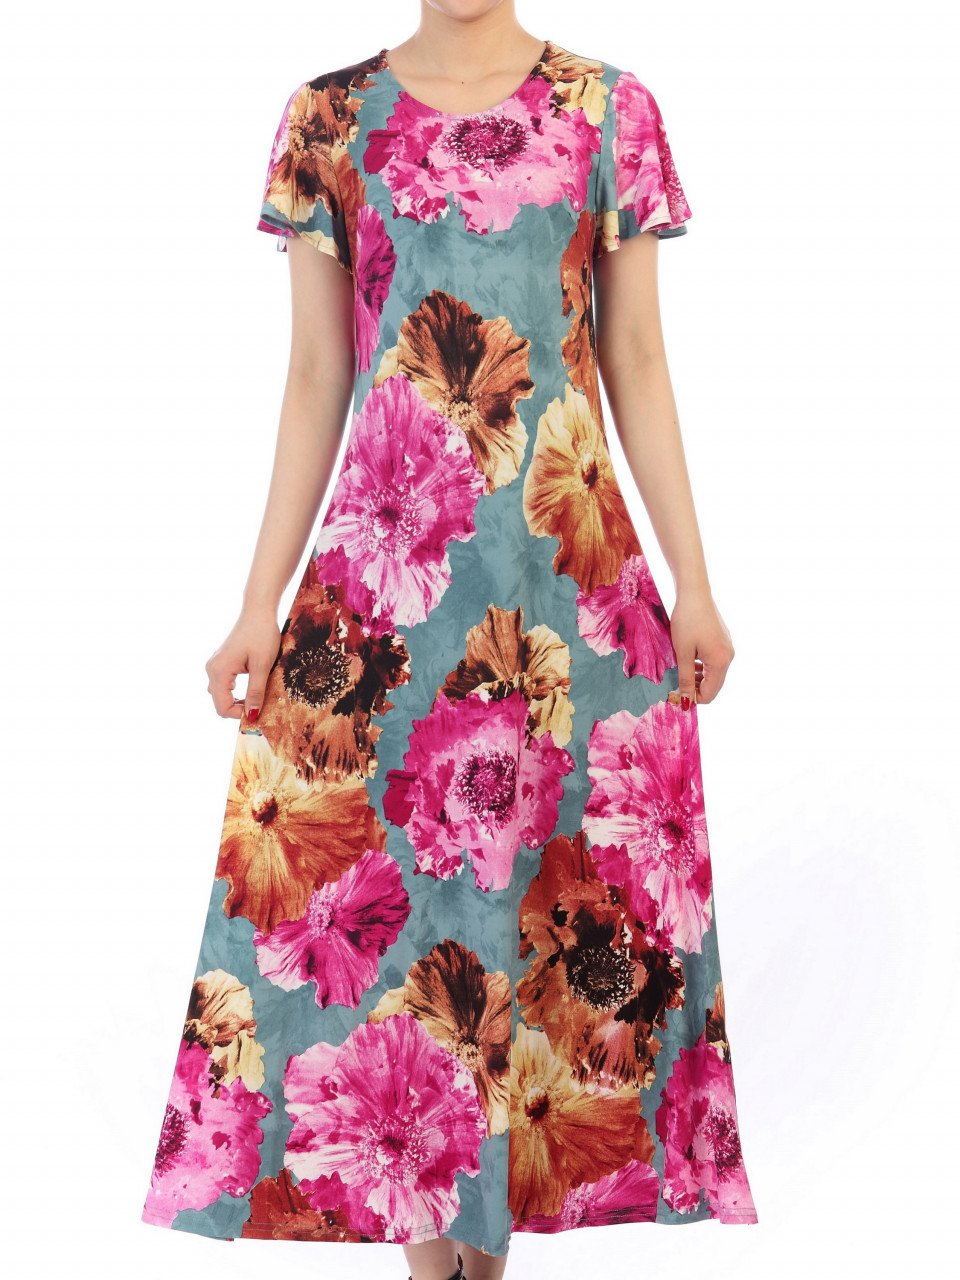 Jolie Moi Printed Cap Sleeve Dress, BLUE FLORAL